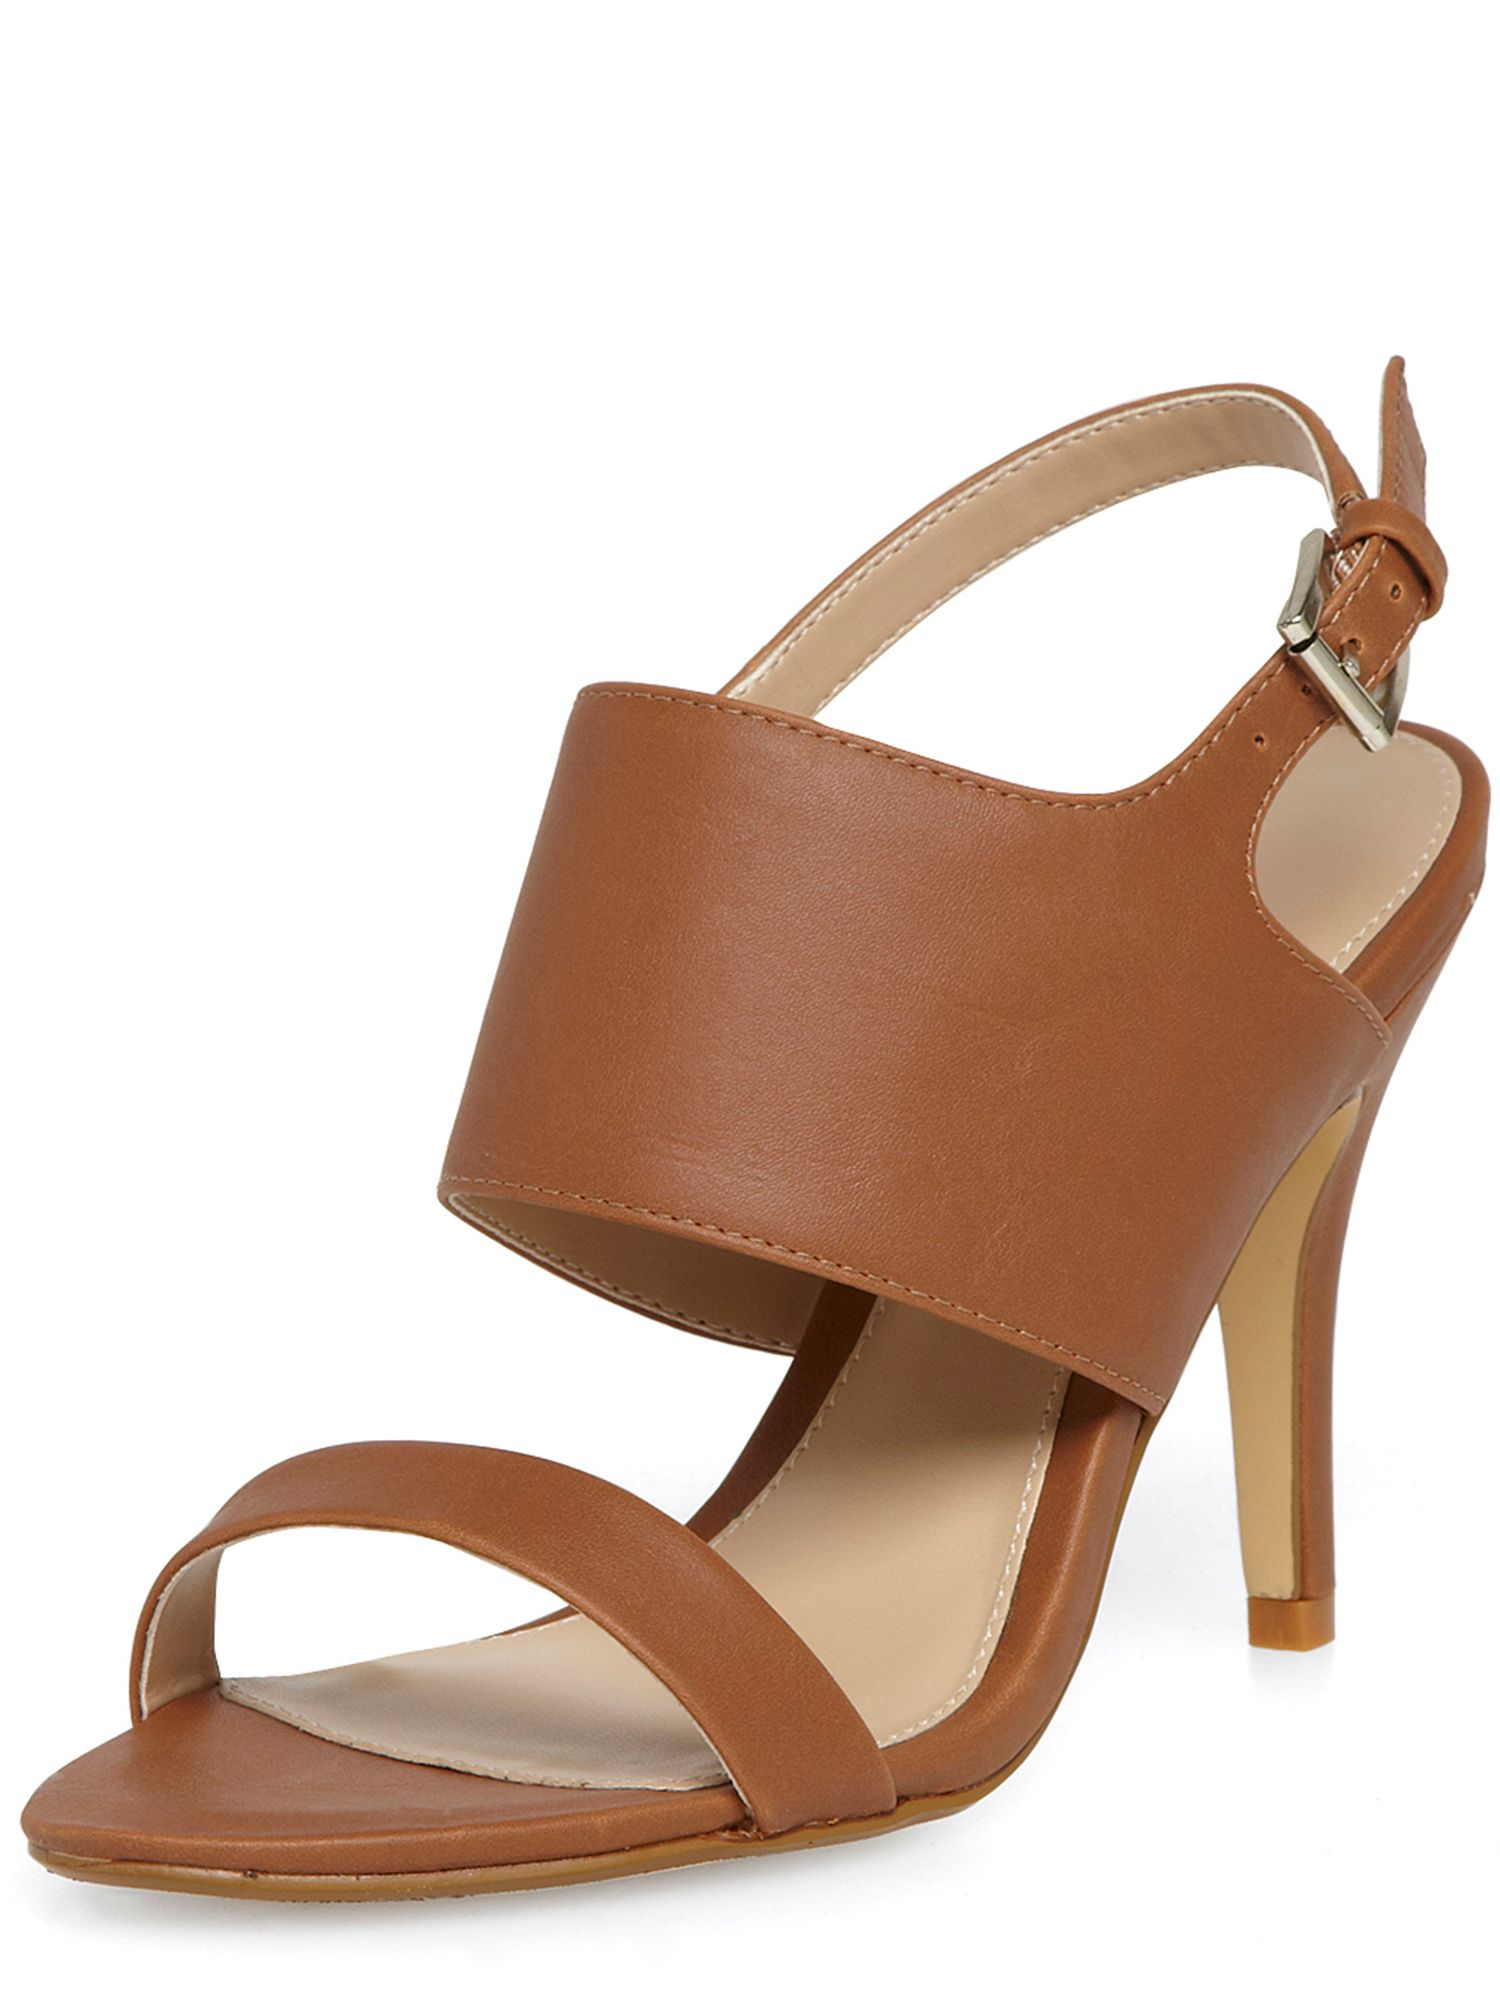 Leather Look High Heel Sandals